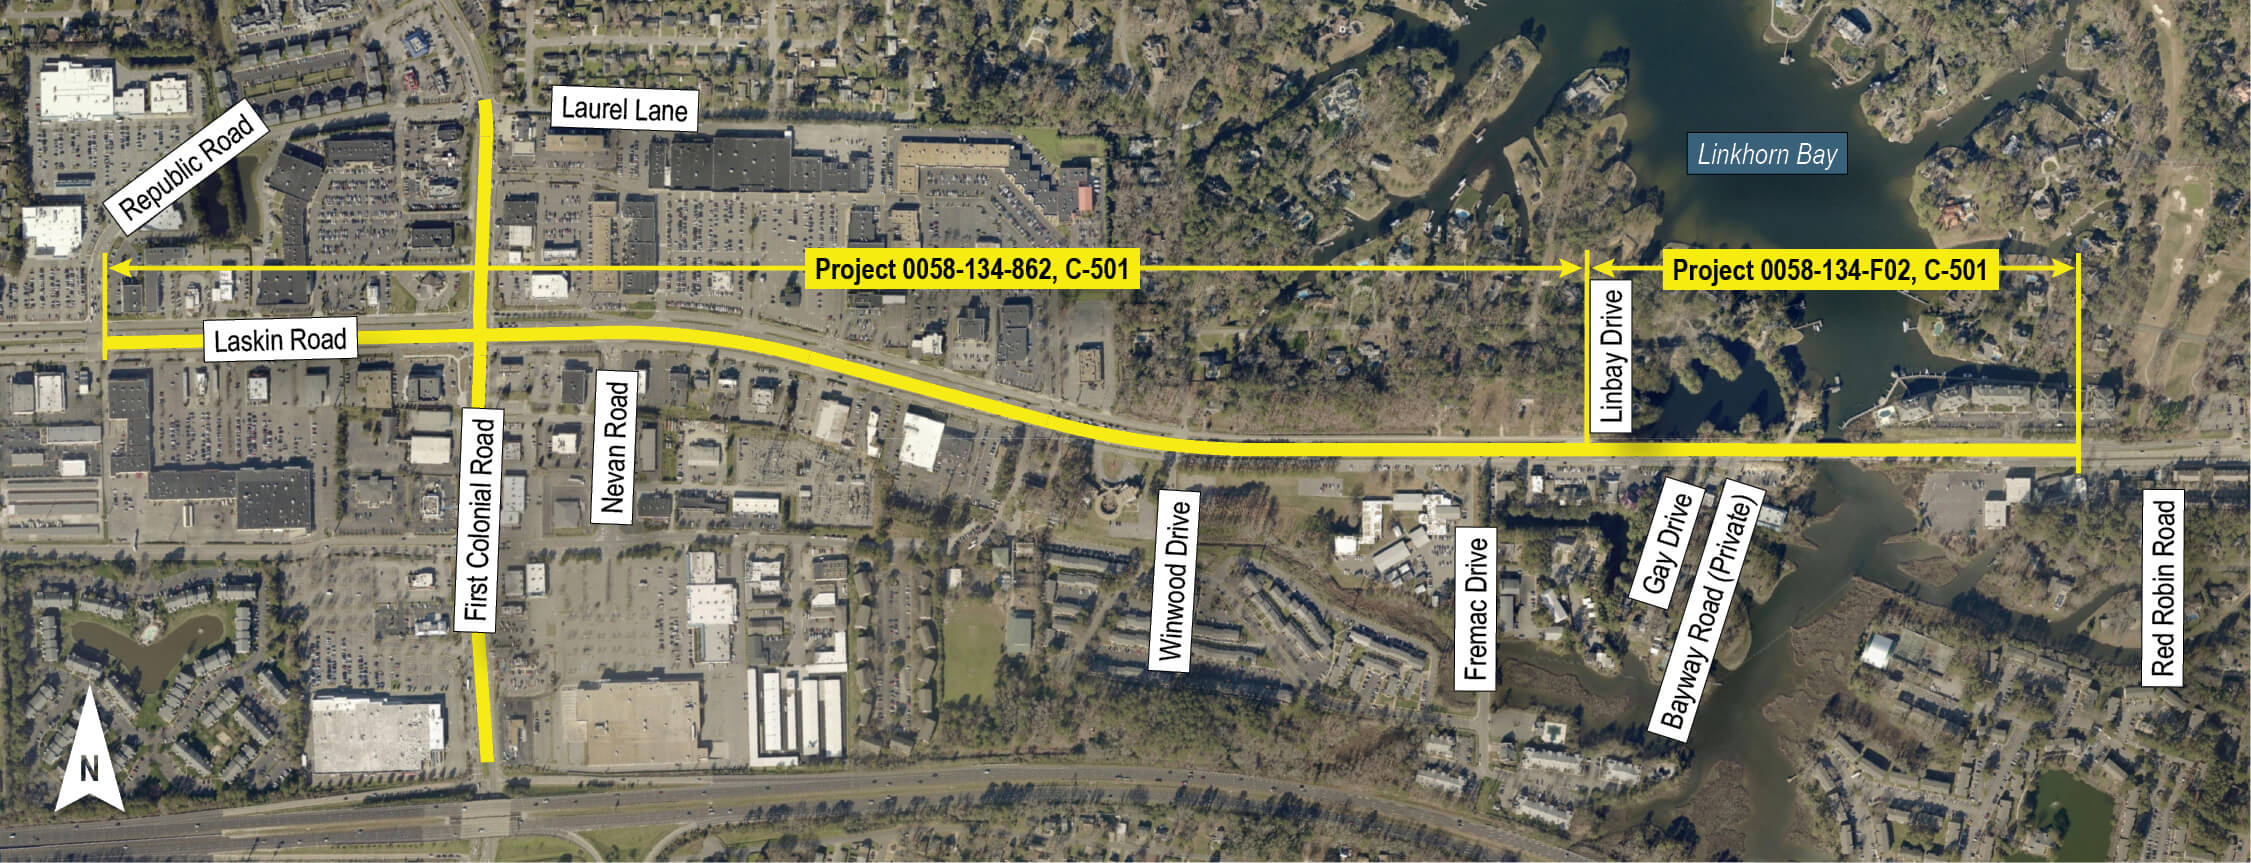 Laskin Road Bridge Replacement & Widening Project - Projects Intended For Was School Out In Virginia Beach On January 27